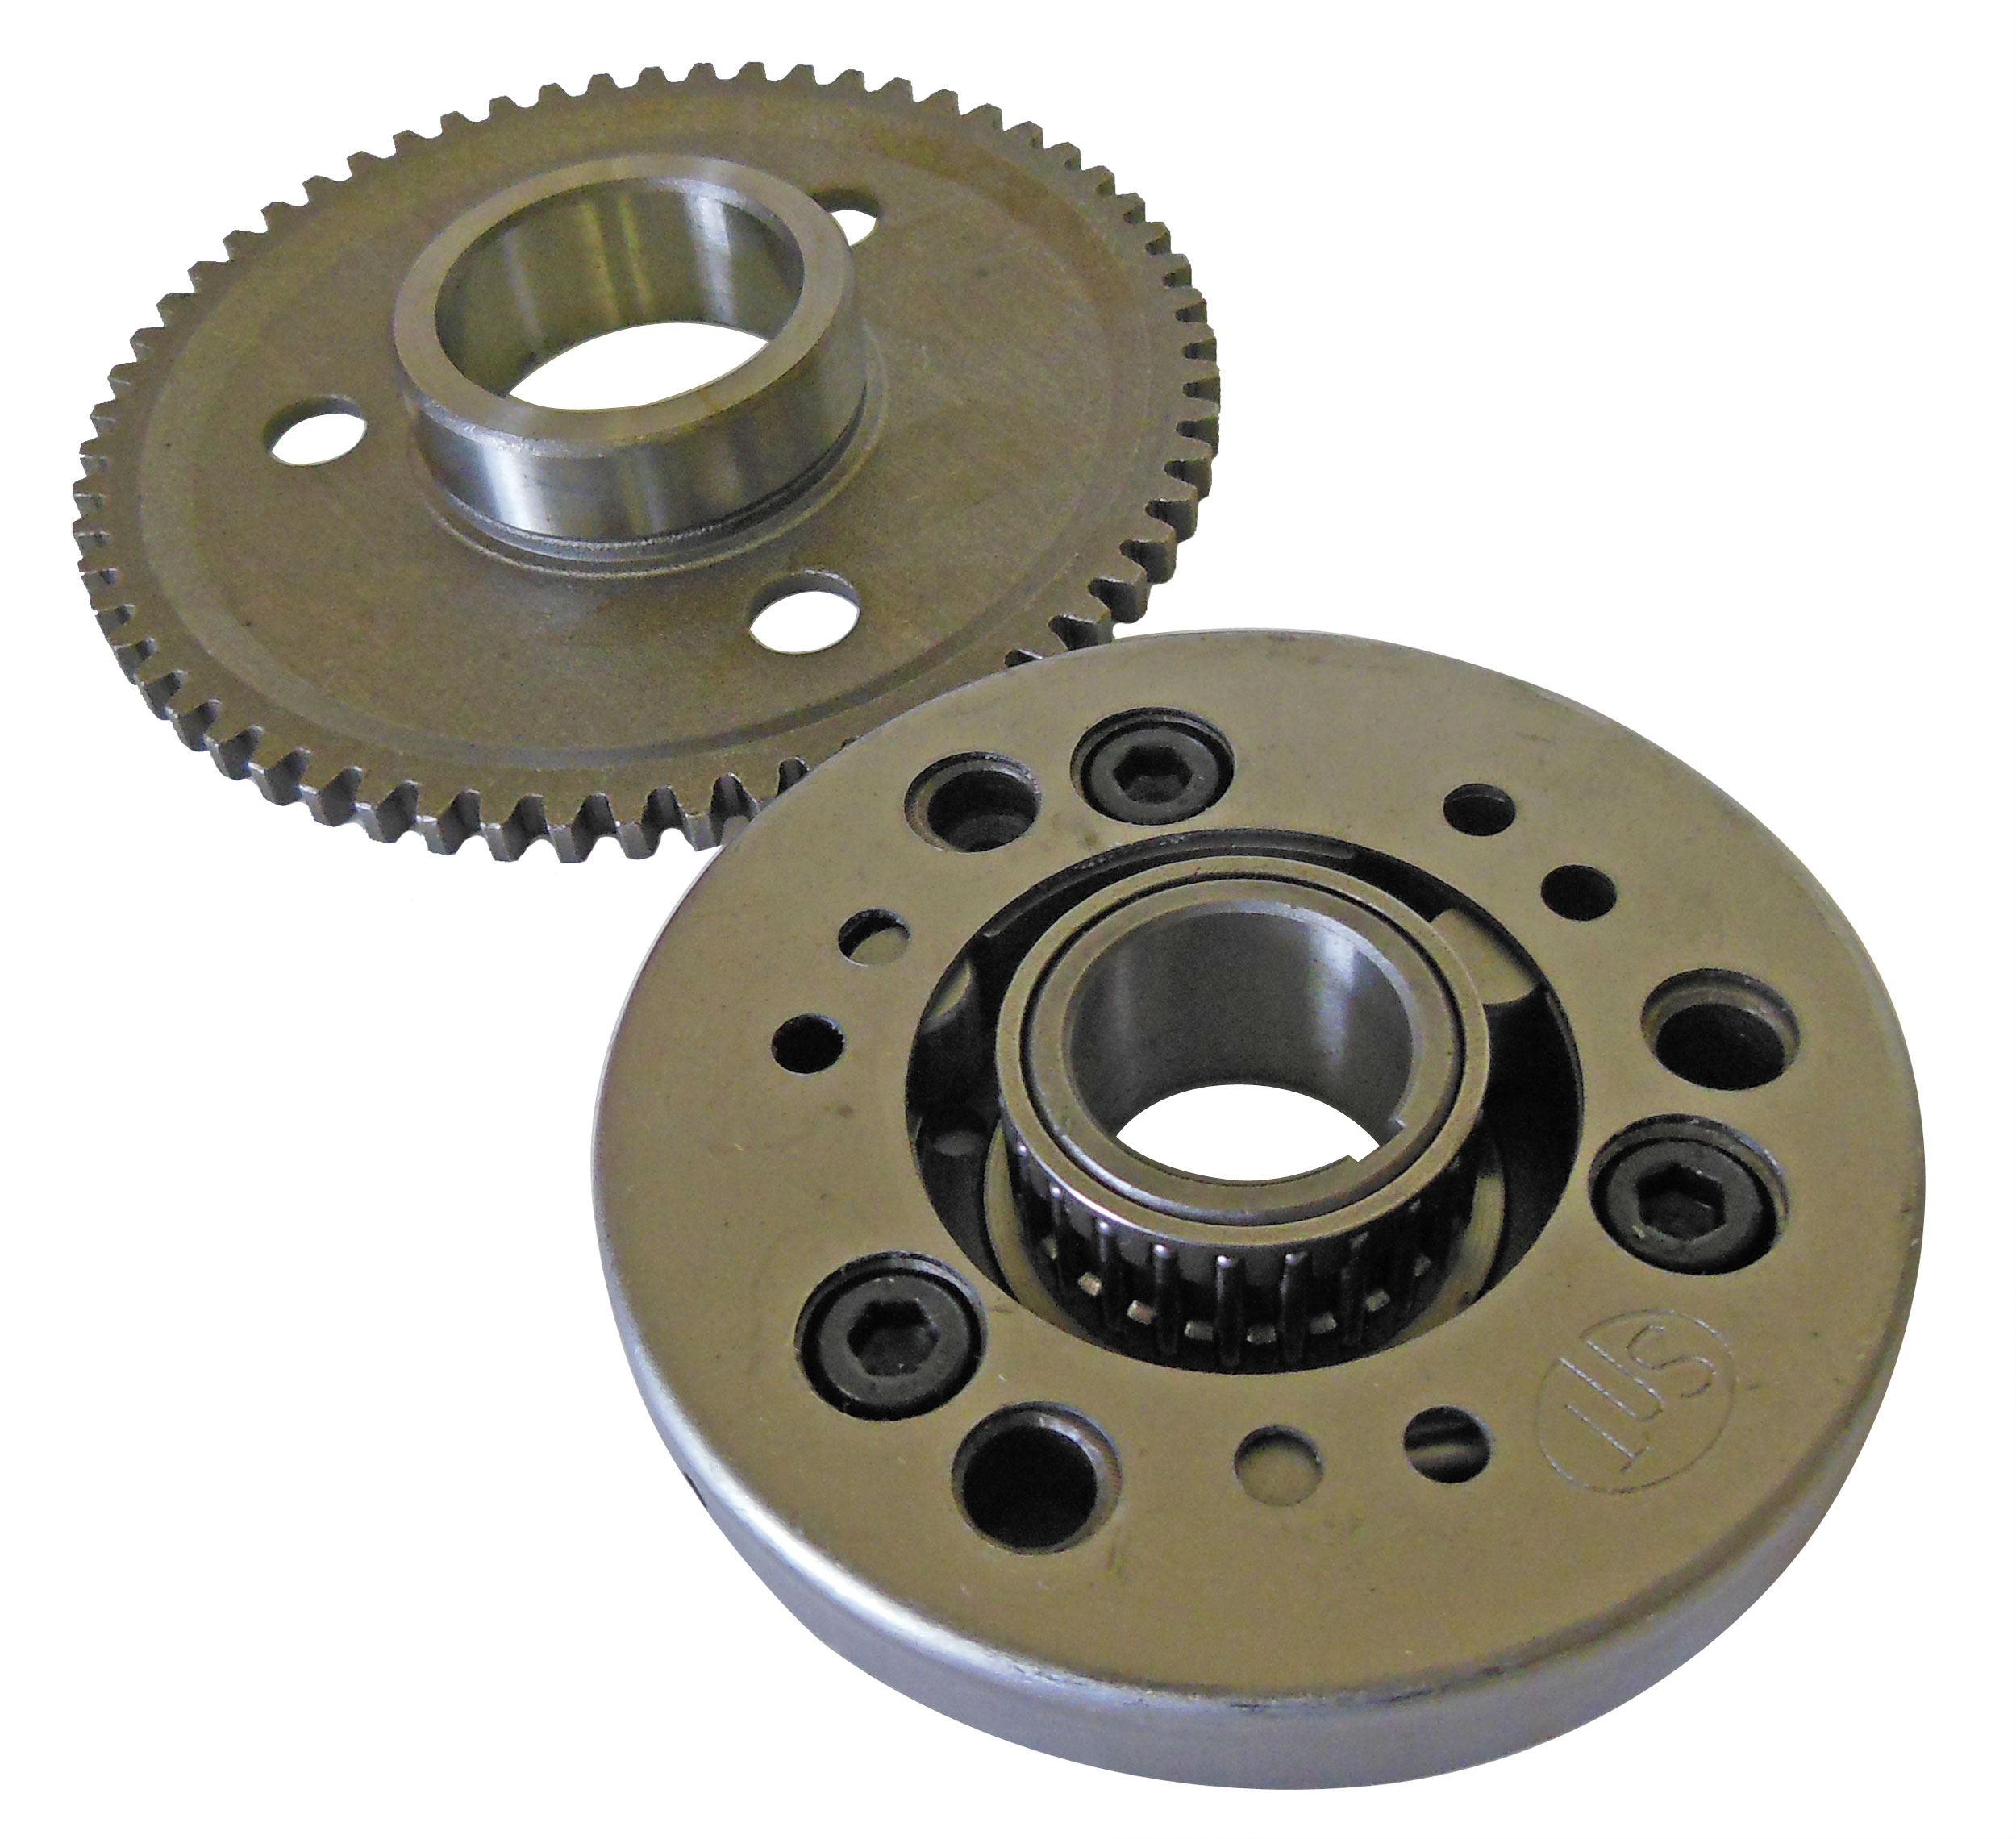 Starter Clutch for GY6, 150cc Engine | 05932 | BMI Karts And Parts